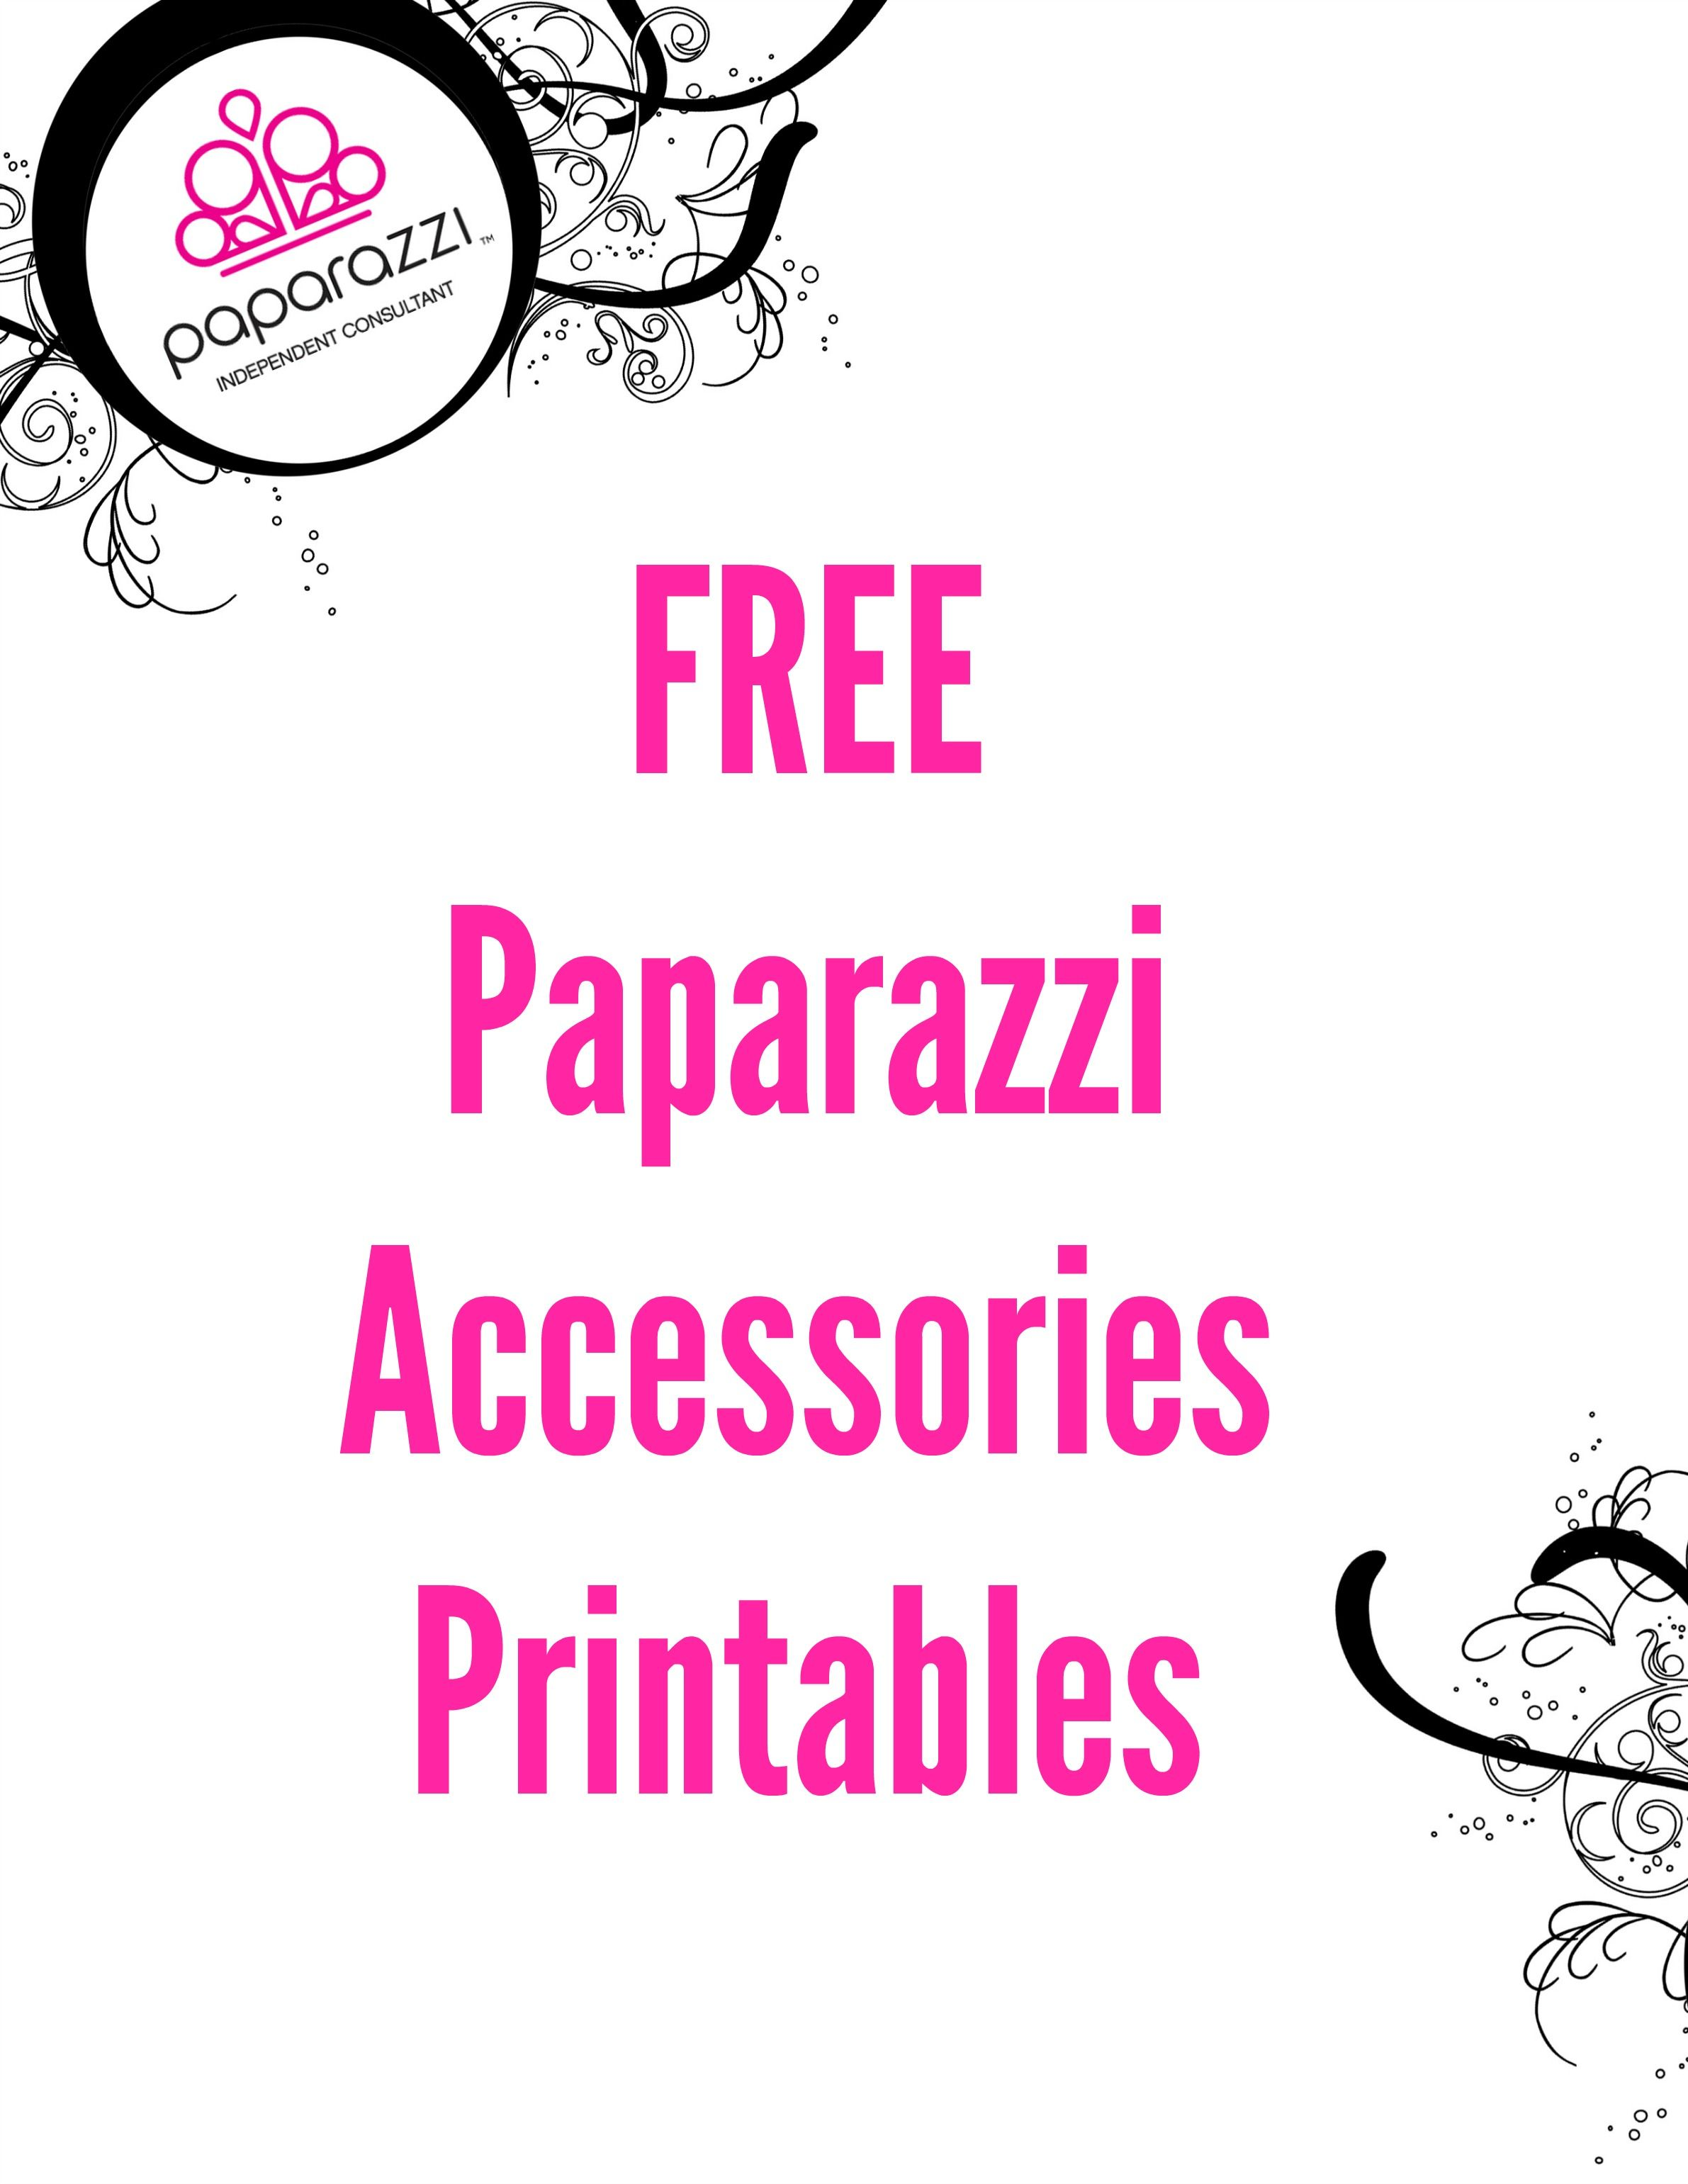 Free Paparazzi Accessories Printables Paparazzi Accessories - Paparazzi business card template